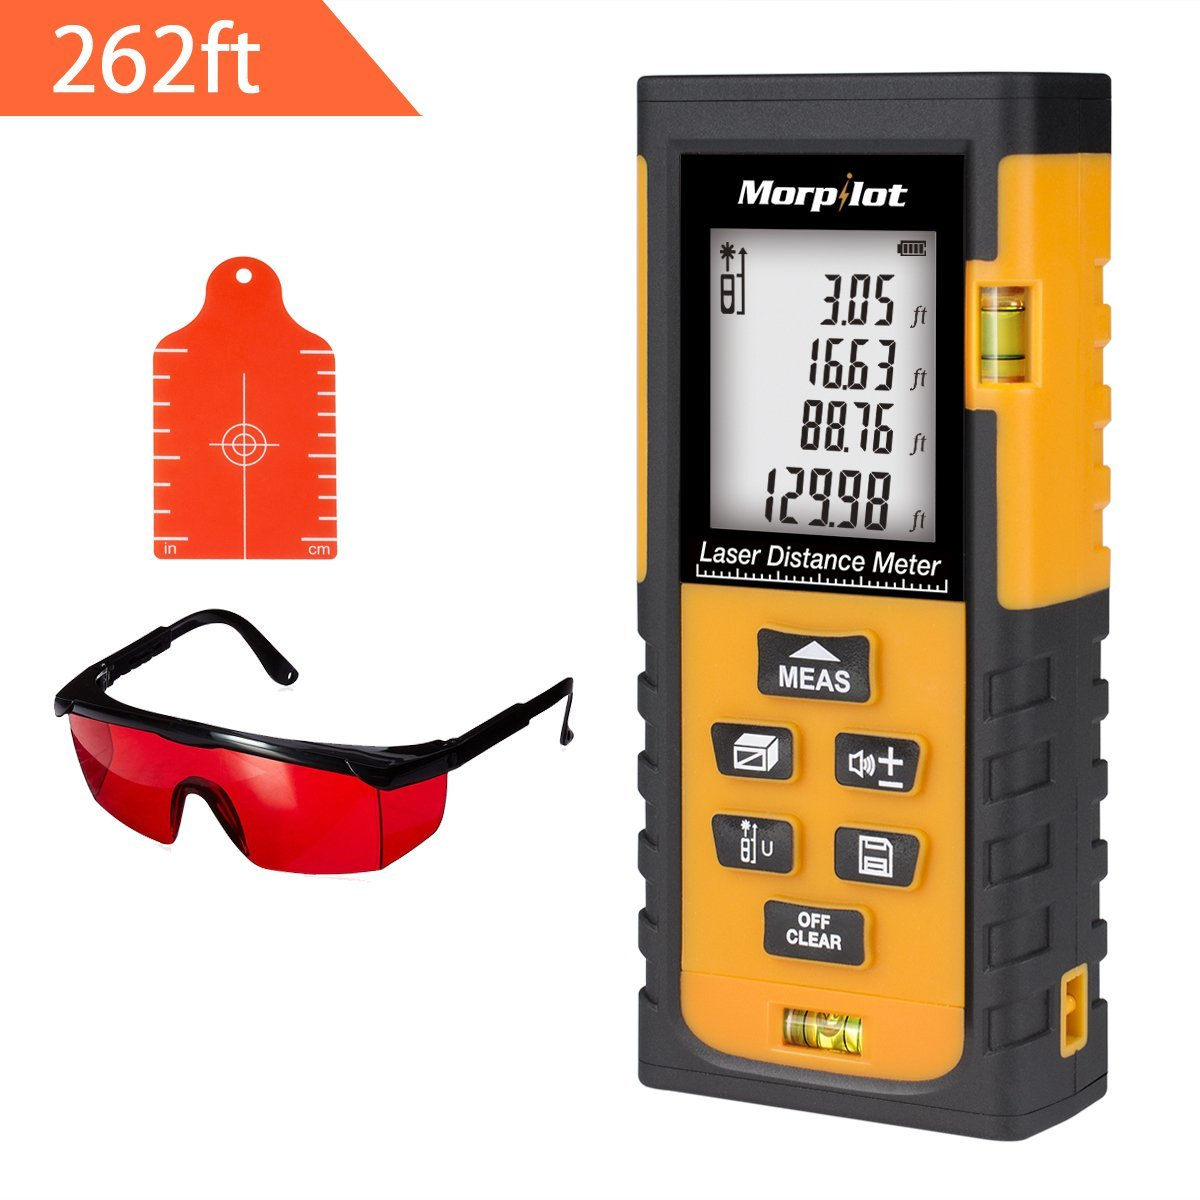 262ft Laser Measure - Morpilot Laser Tape Measure with Target Plate & Enhancing Glasses, Laser Measuring Device with Pythagorean Mode, Measure Distance, Area, Volume Calculation